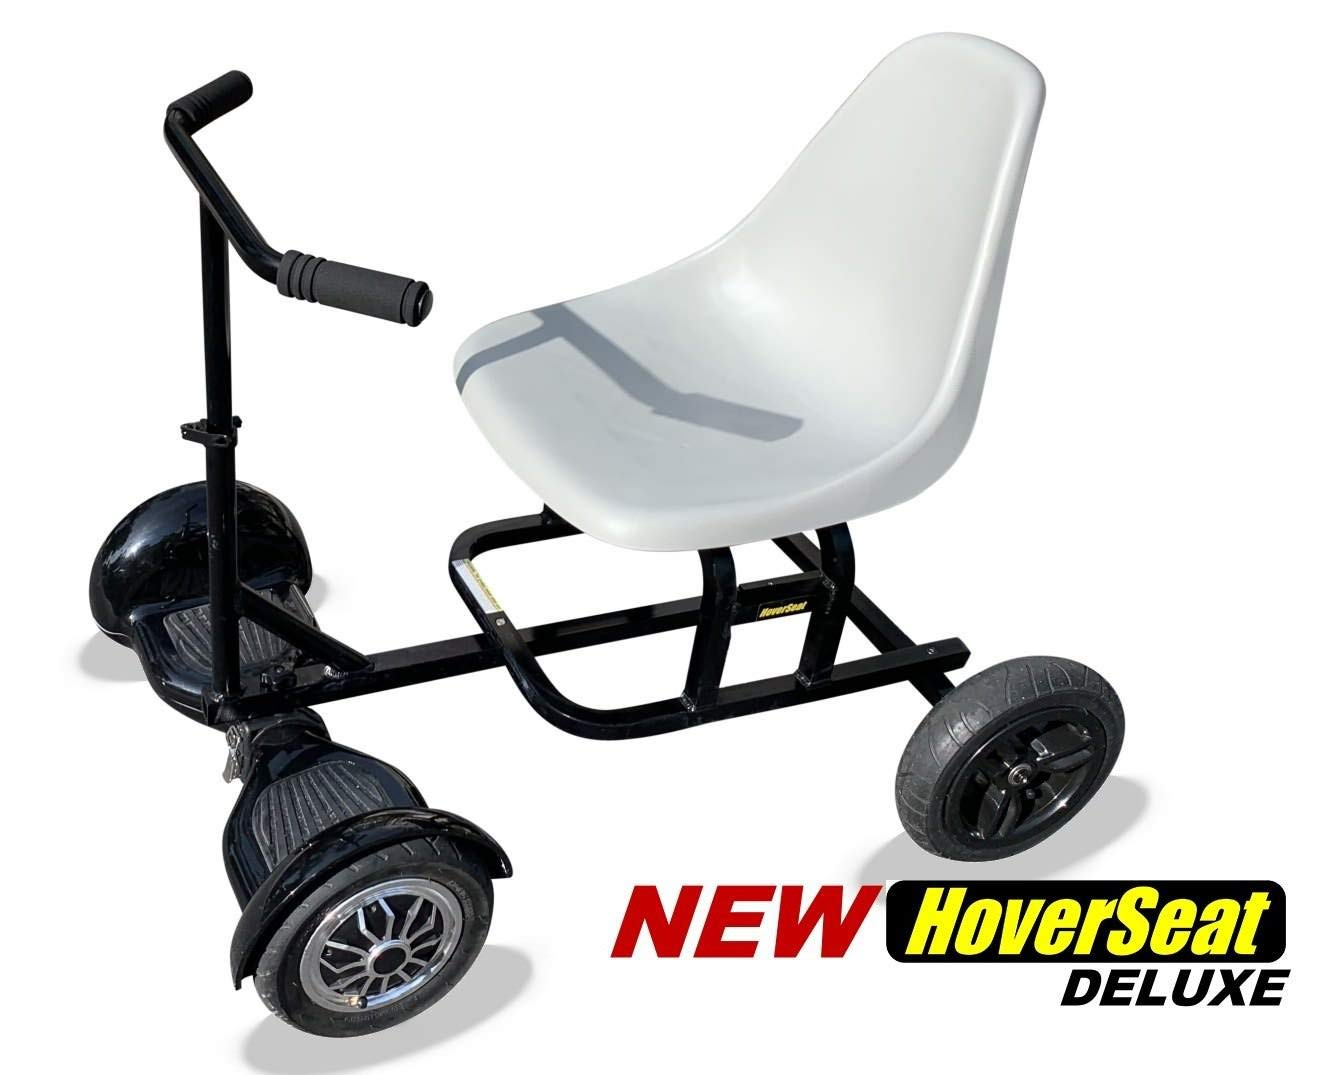 HoverSeat Deluxe - Seating Attachment for Hoverboard Self Balancing Scooter. Now Comes with Handle bar and Molded seat. by HoverSeat